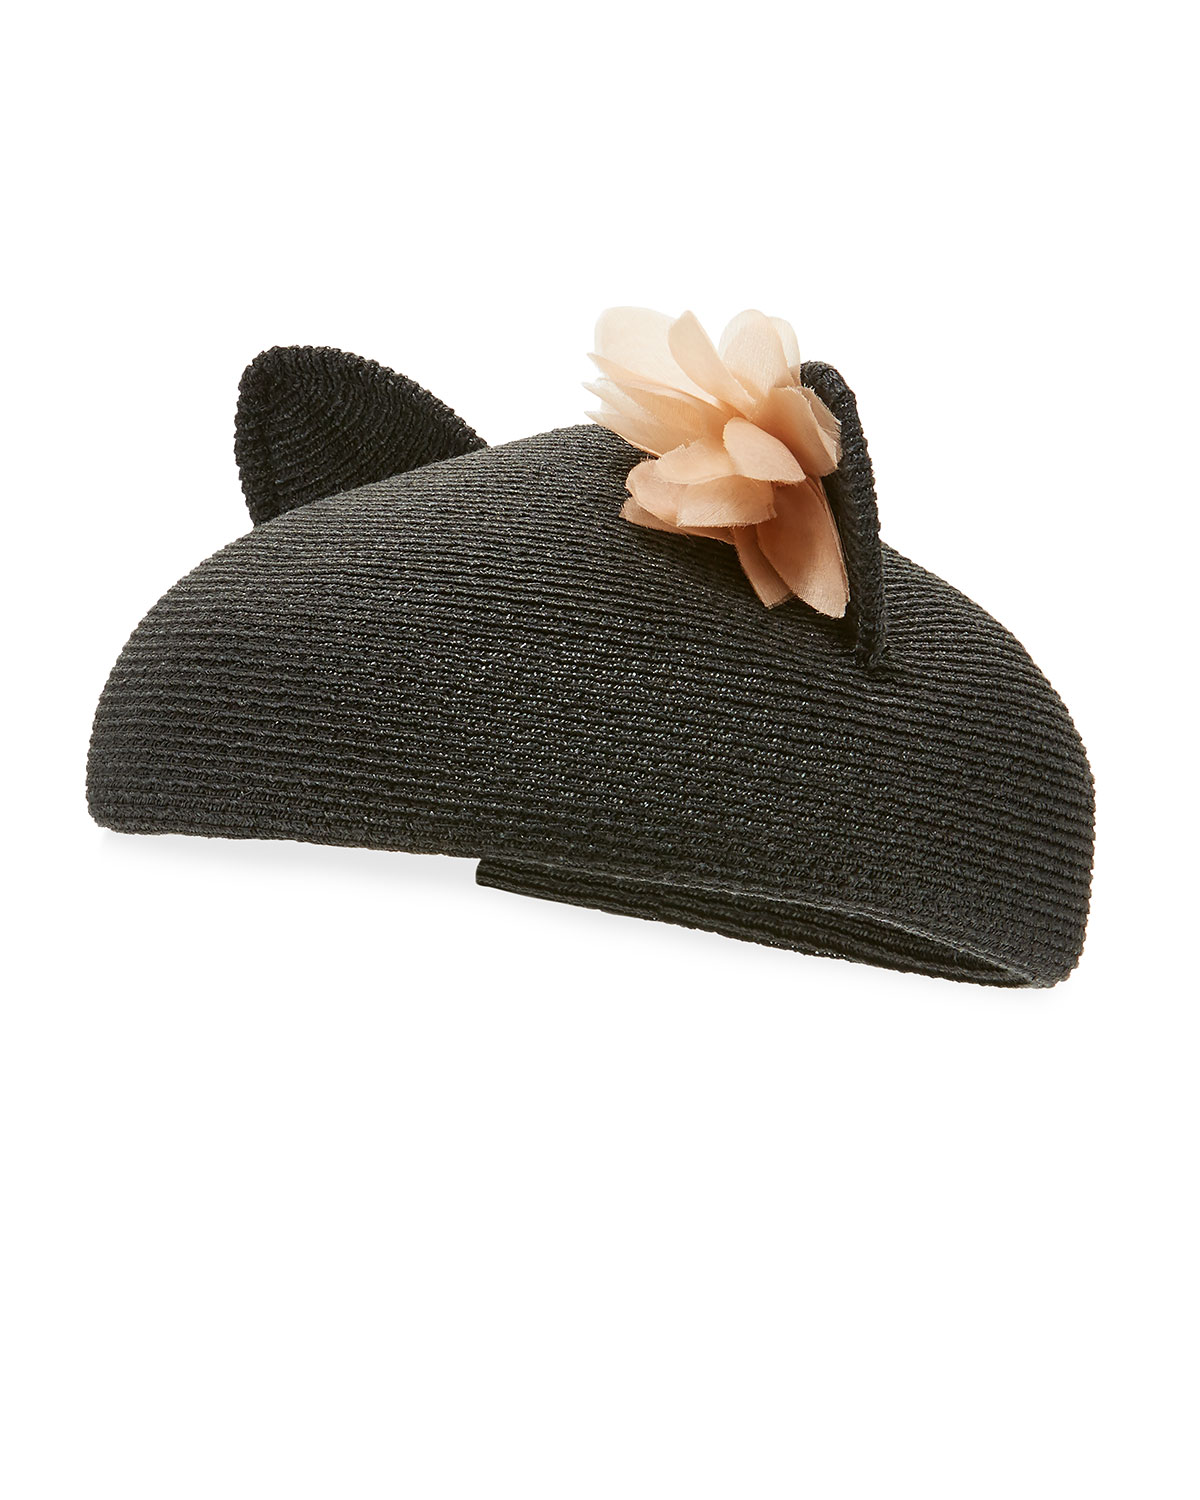 bde5902851345 Eugenia Kim Caterina Braided Cat-Ear Beret Hat